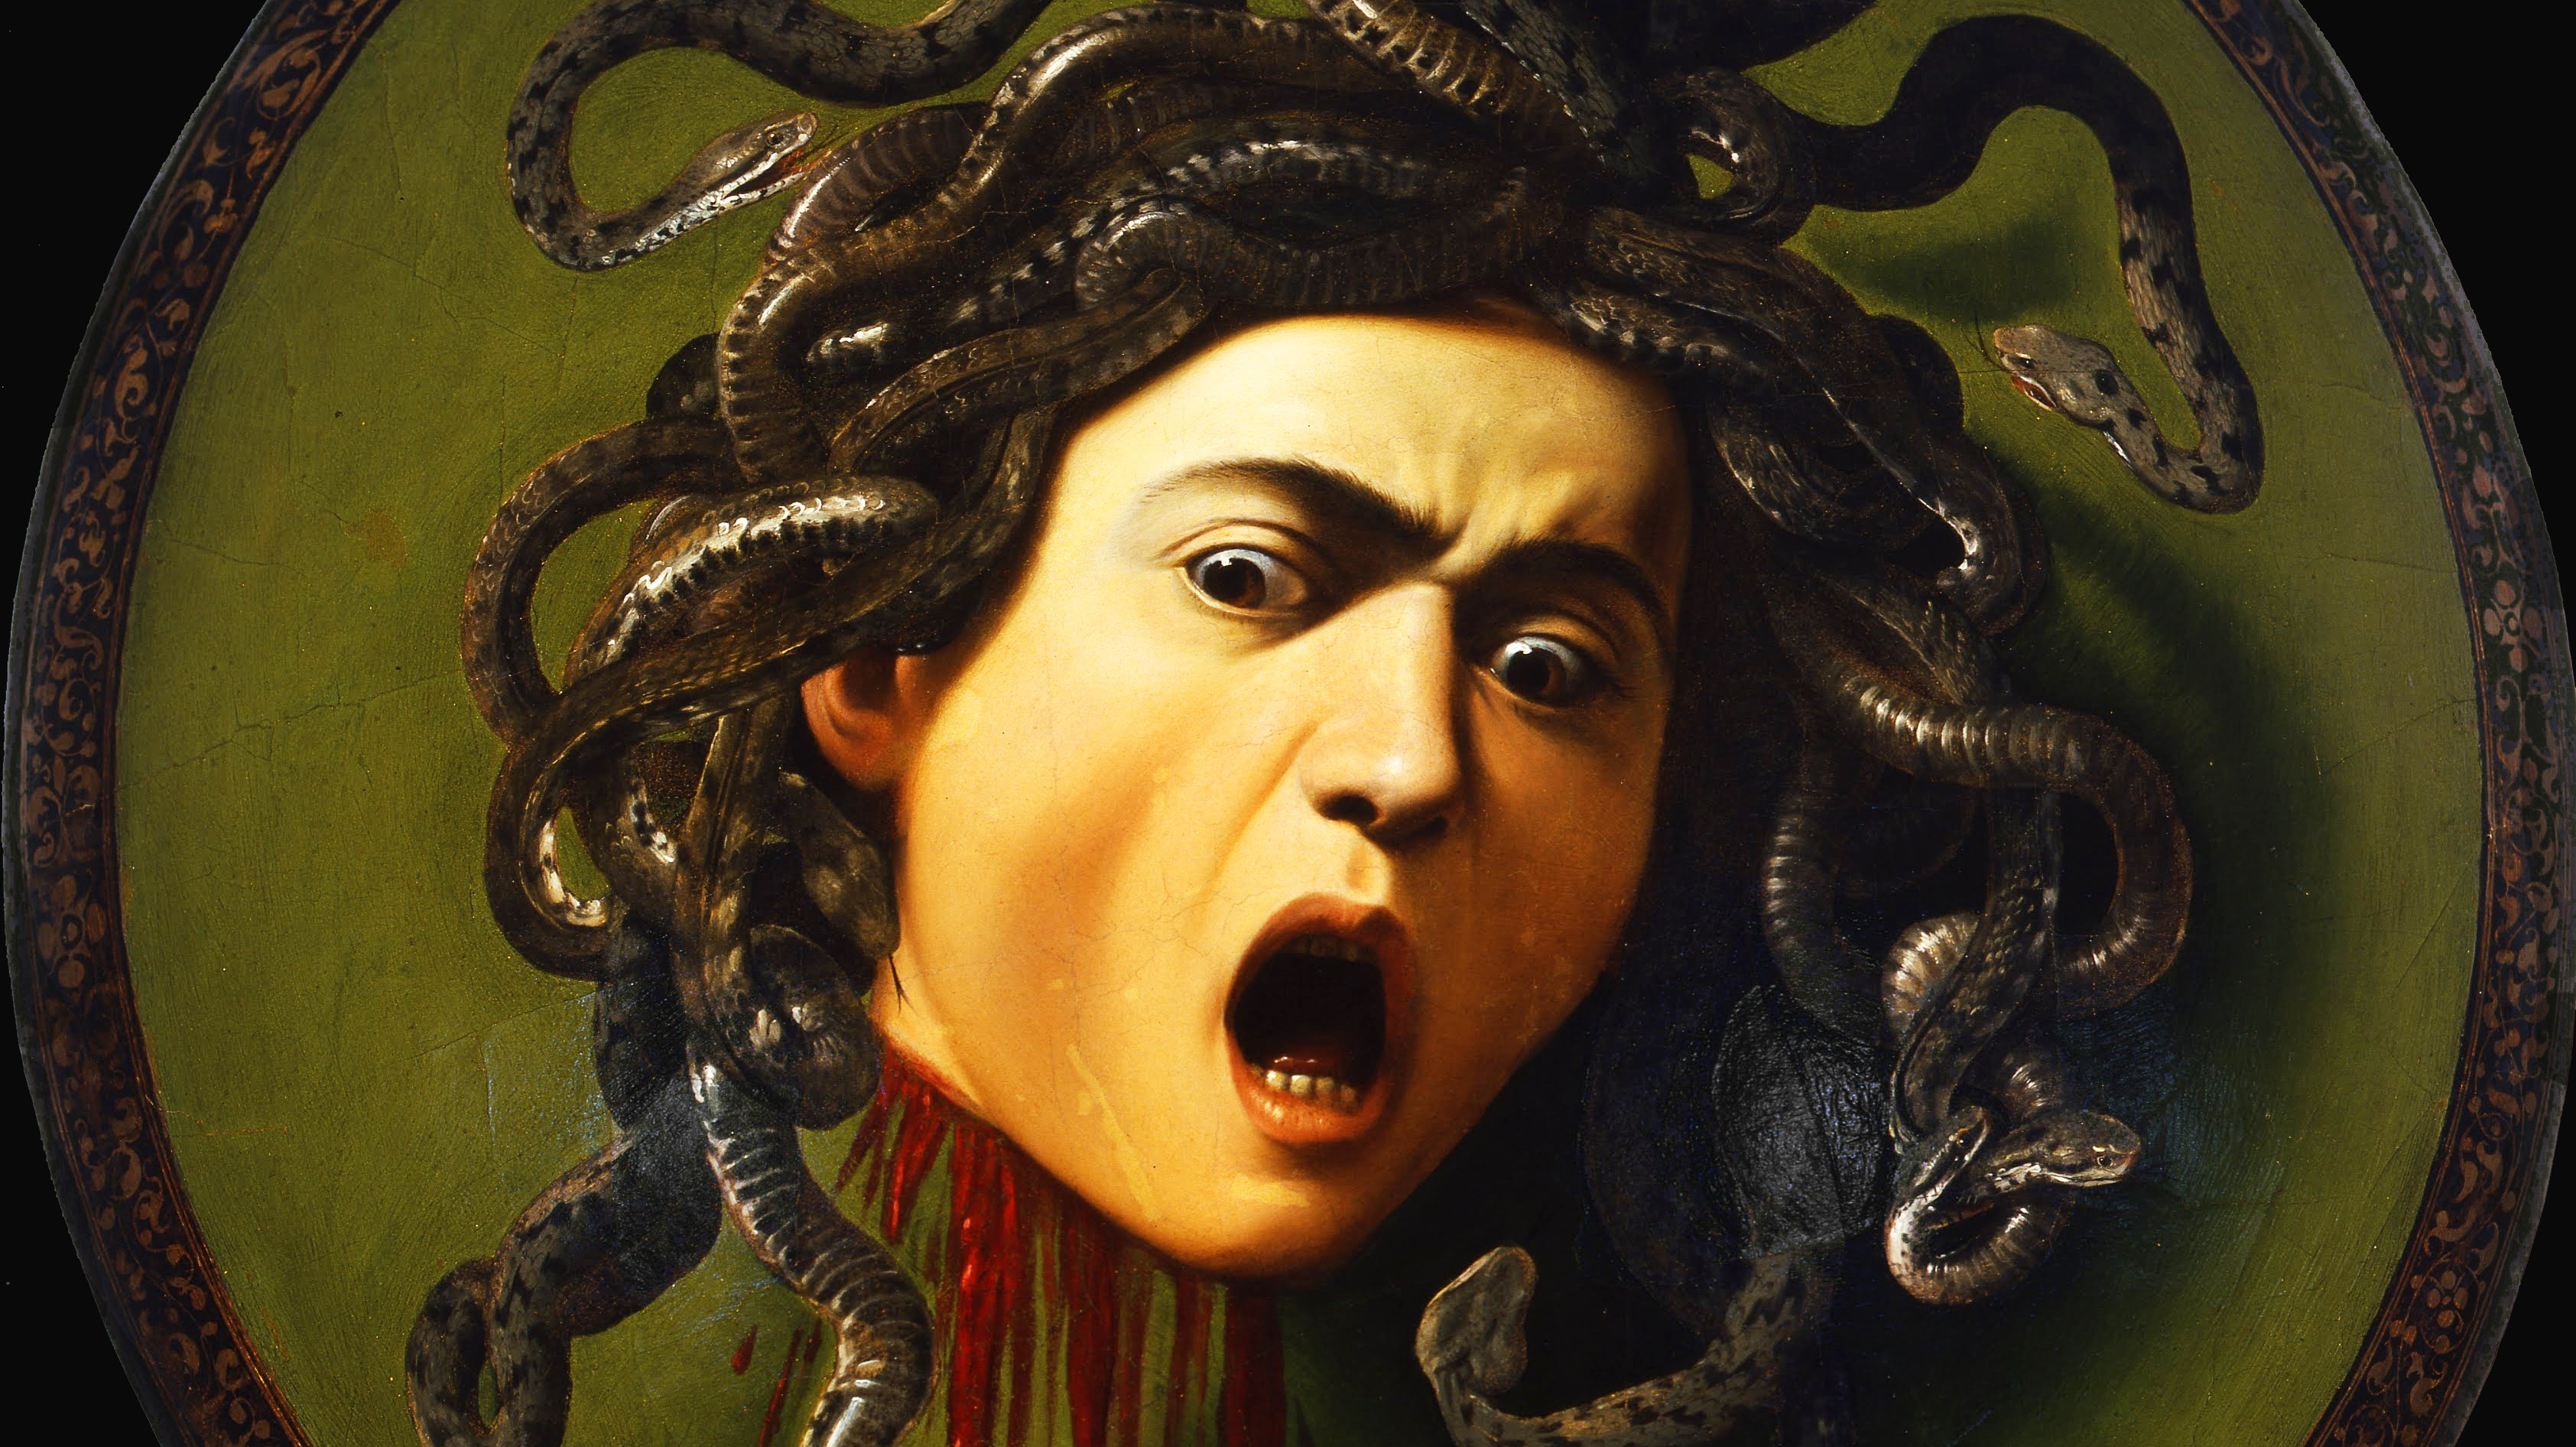 The Timeless Myth of Medusa, a Rape Victim Turned Into a Monster